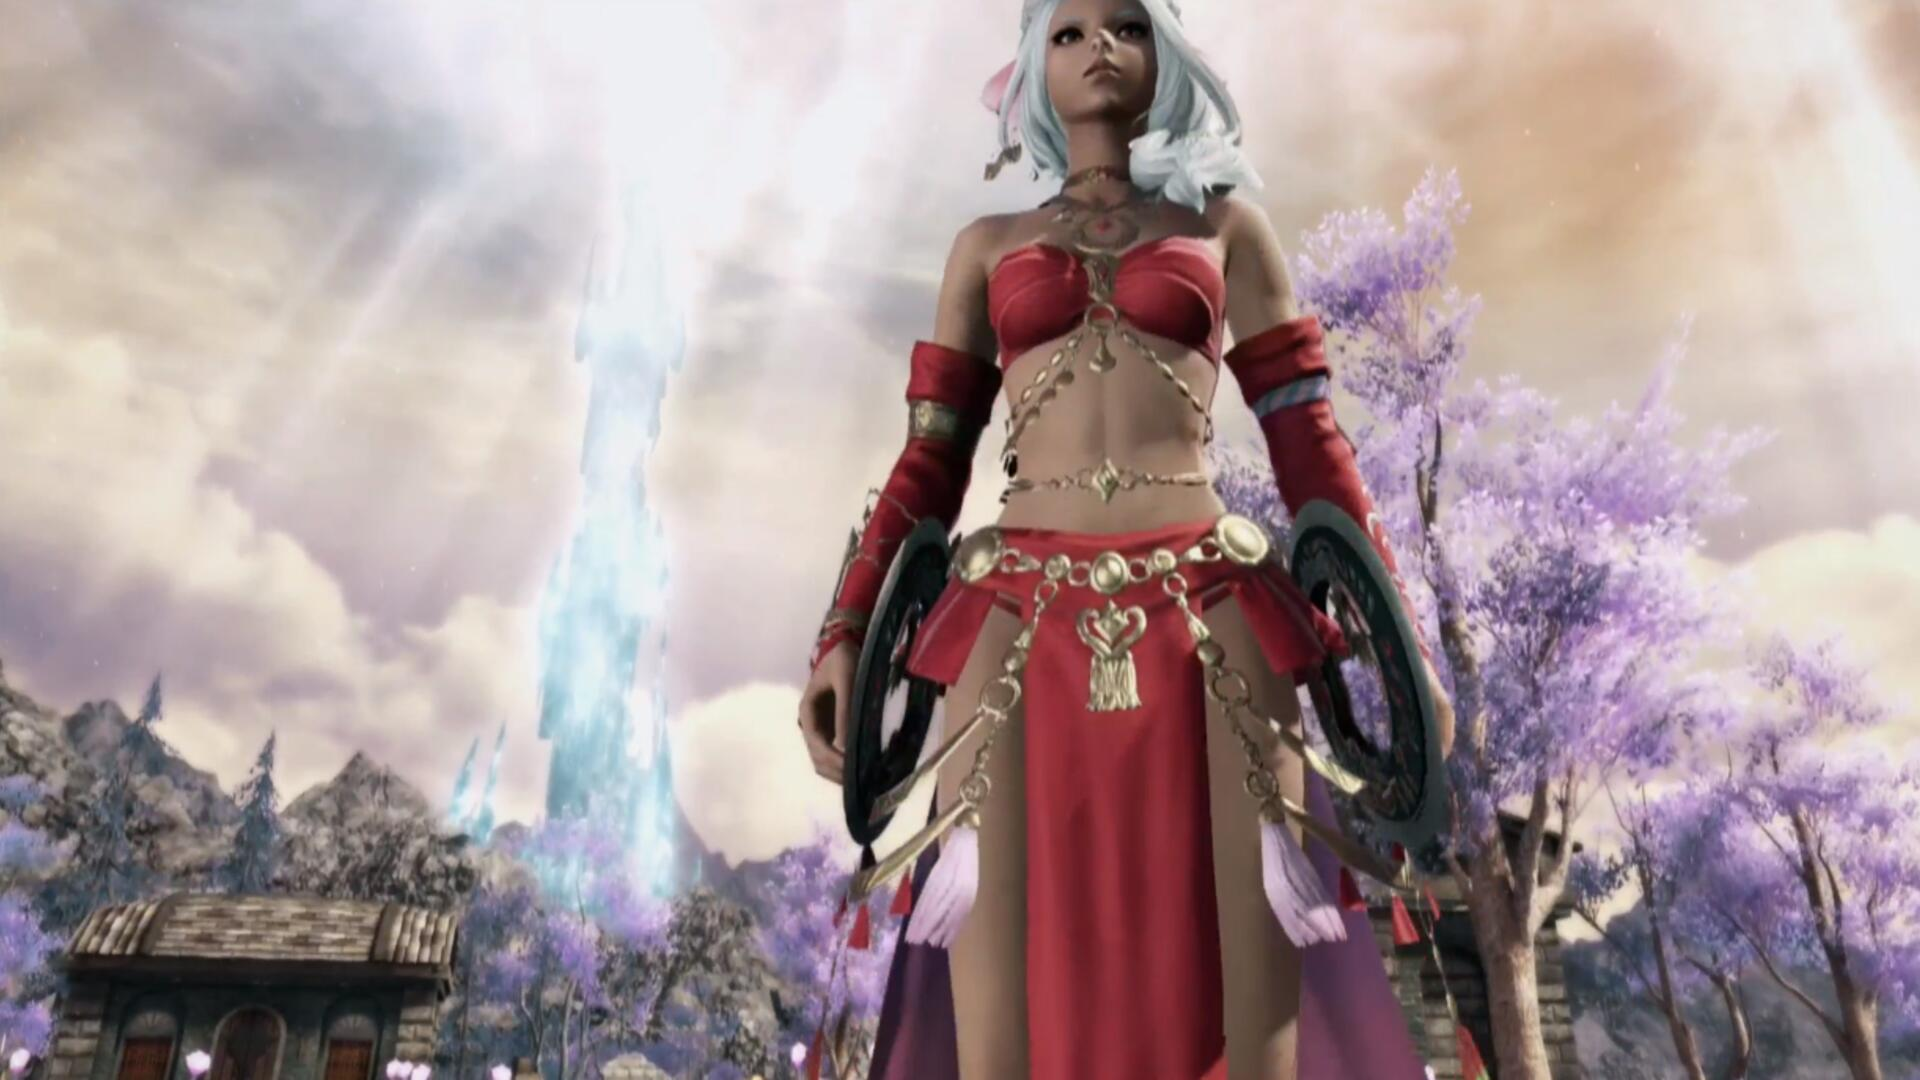 Final Fantasy 14: Shadowbringers' Last Job is Dancer | USgamer